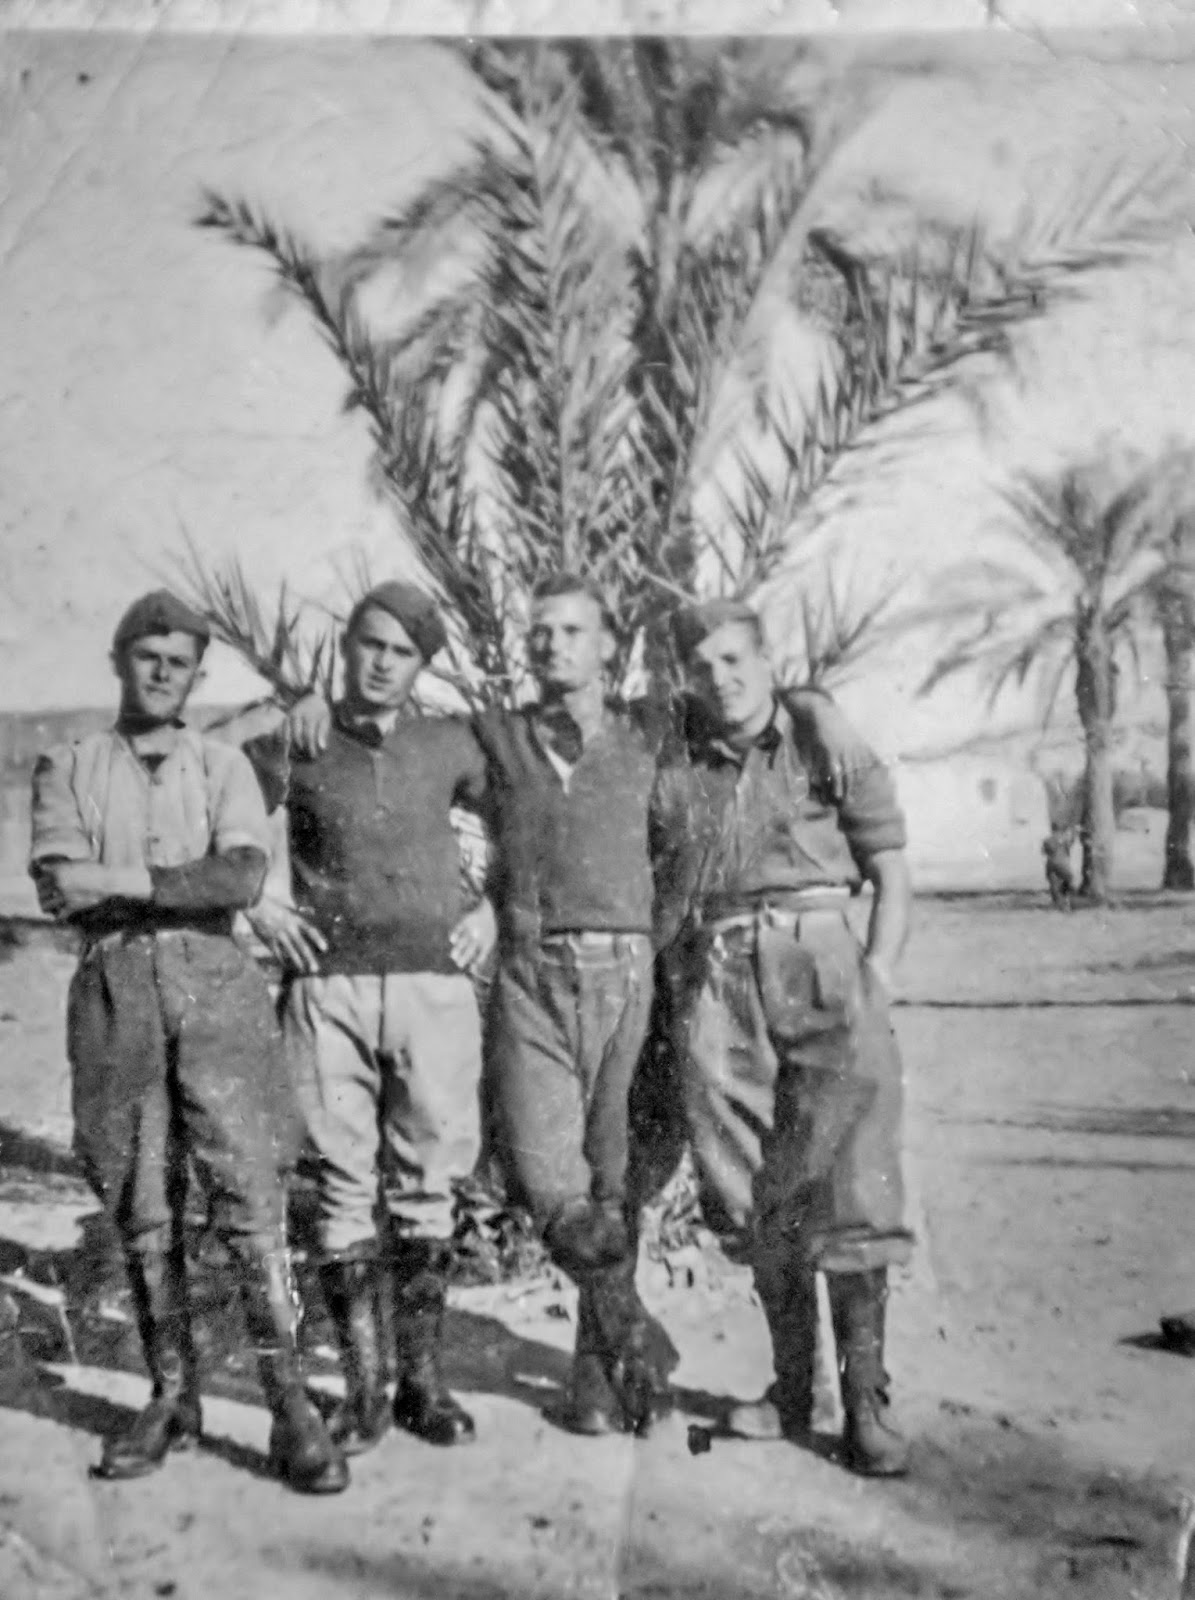 Giuseppe Torcasio  2nd from the right in North Africa WW2